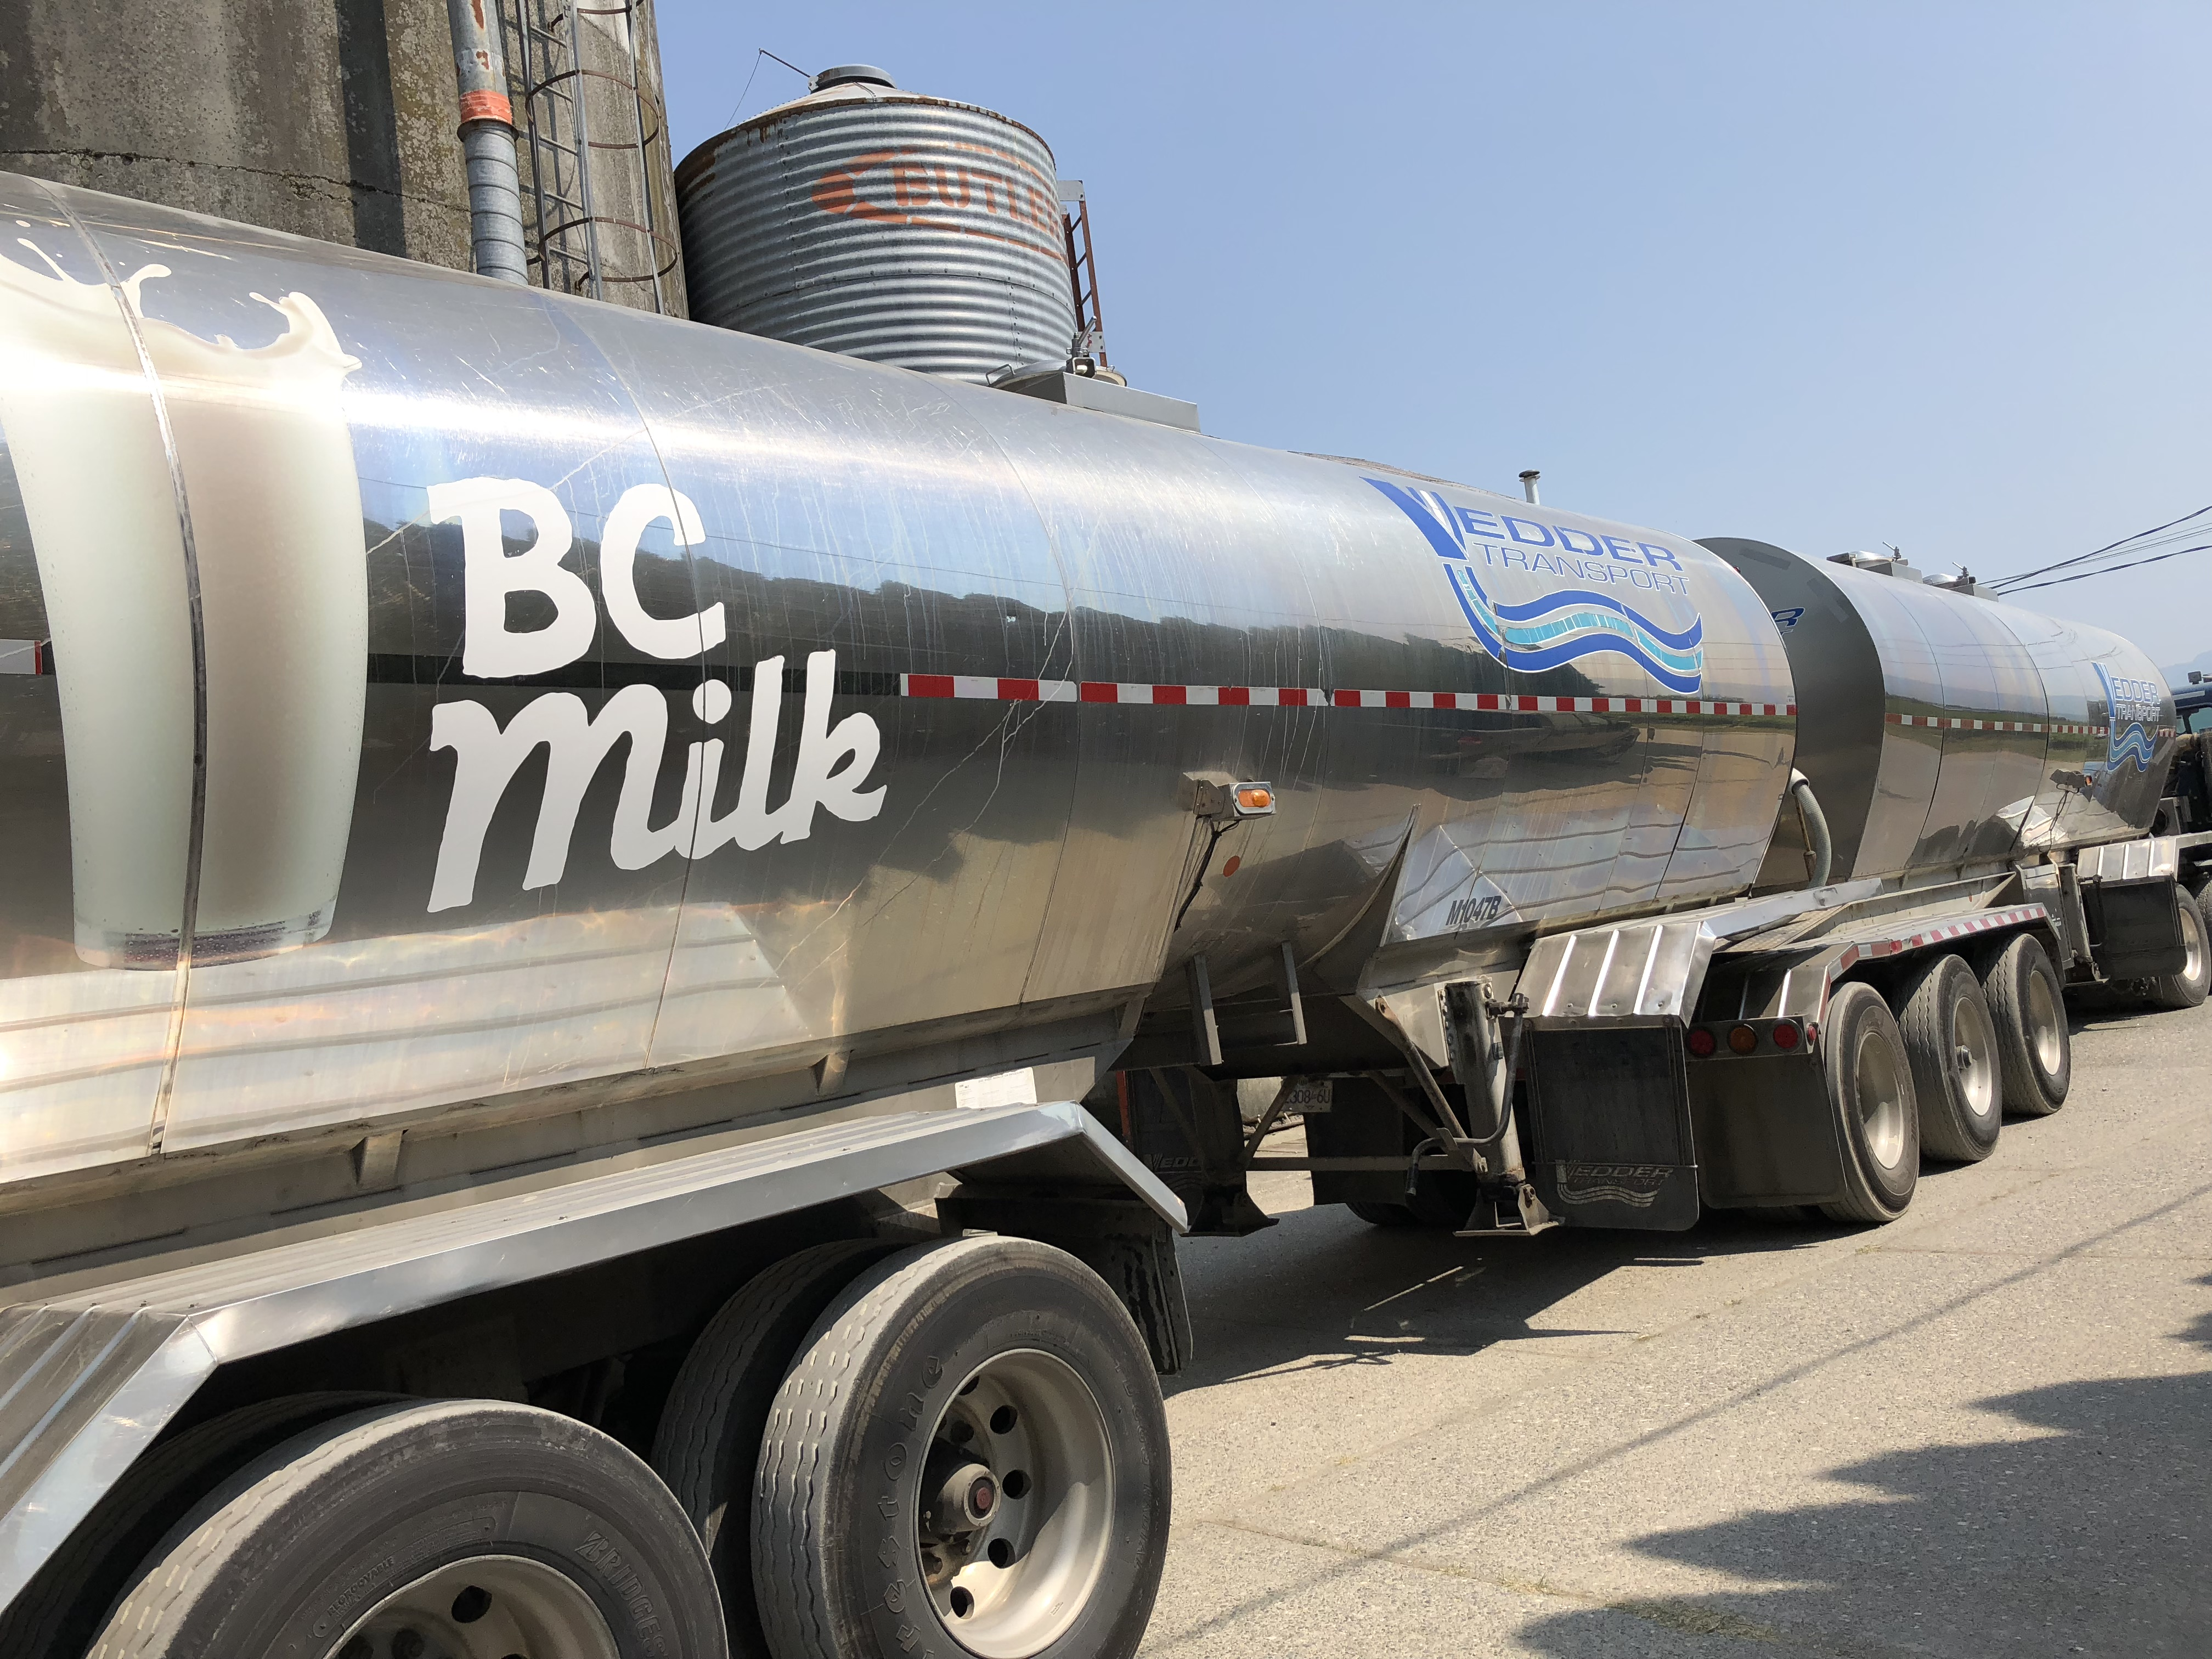 Colour photograph of a BC Milk truck in front of silos. The sign on the truck reads